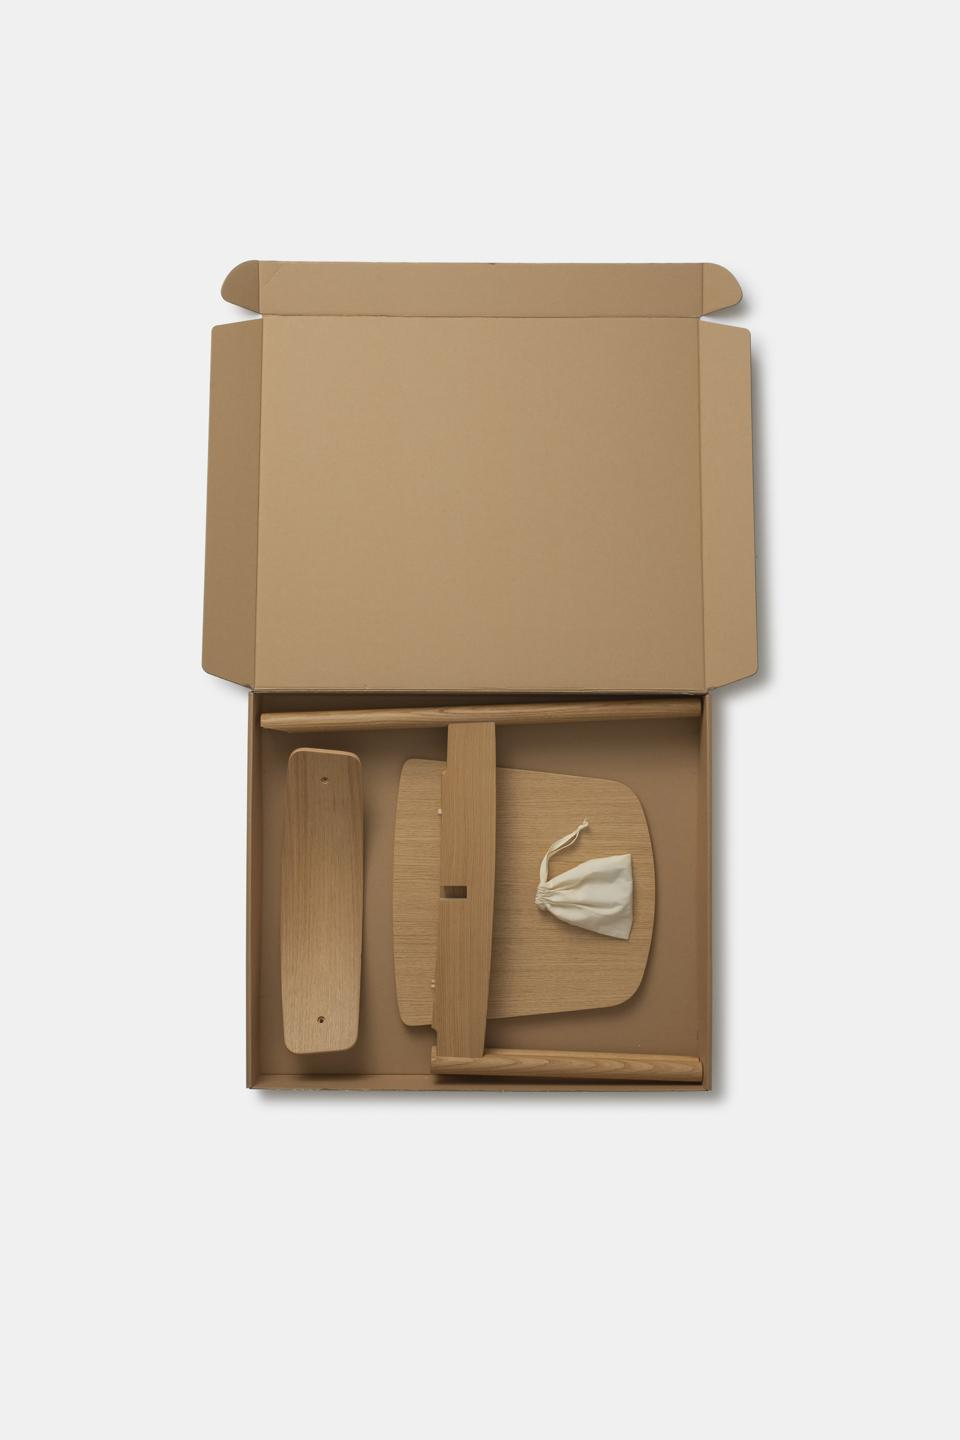 Flatpacked into a box, the Cross chair reduces delivery costs and transportation emissions.